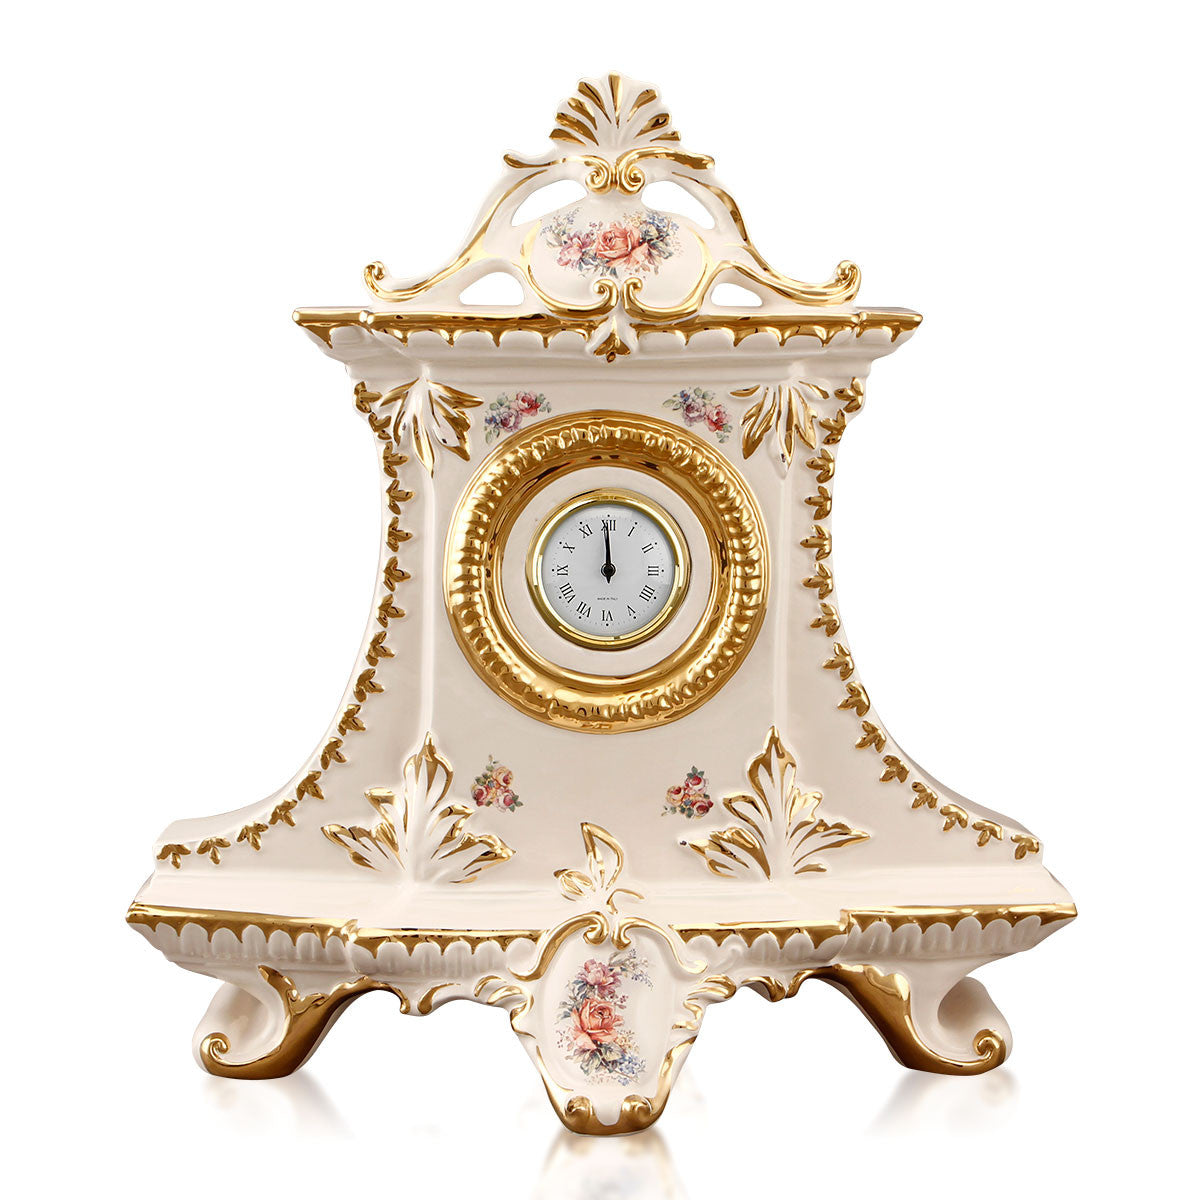 Ceramic Art Nouveau clock